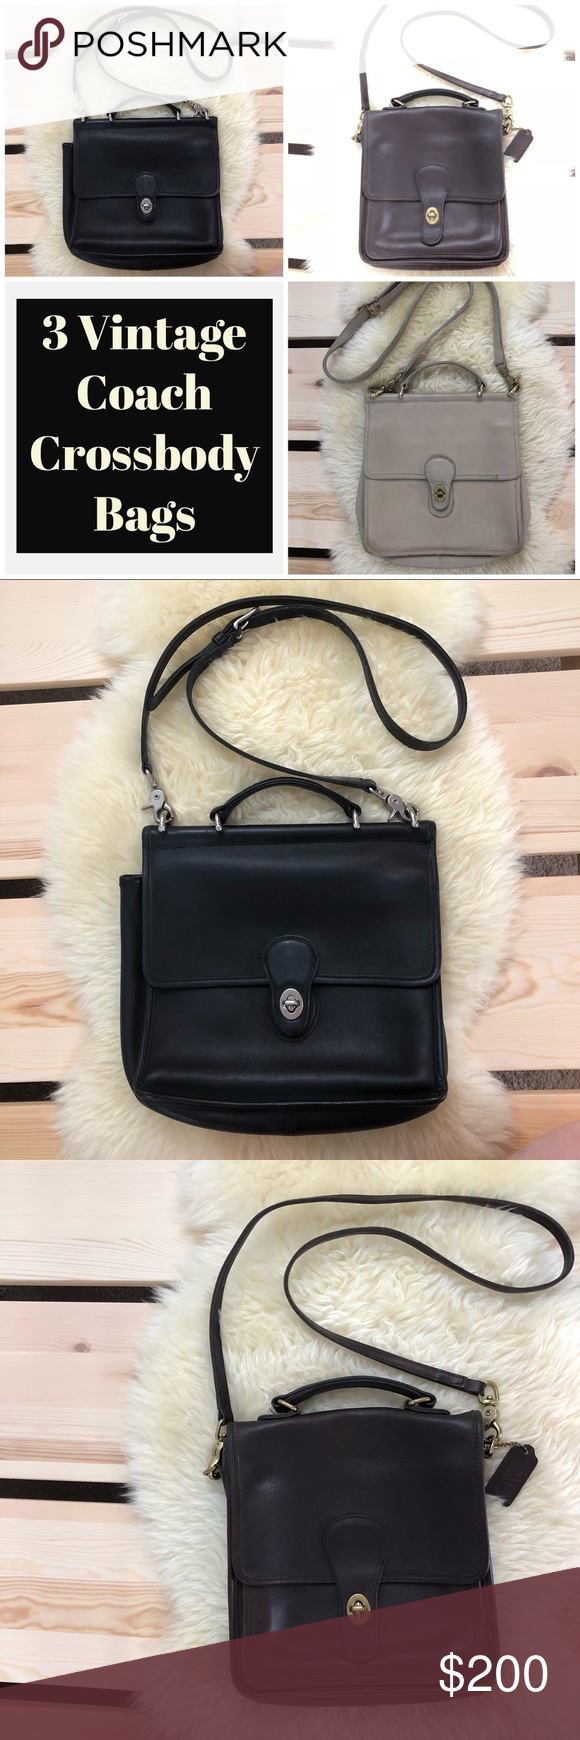 Spotted while shopping on Poshmark  3 Vintage Coach Leather Bags Black  Brown Cream!  poshmark  fashion  shopping  style  Coach  Handbags 9d3c10d94d